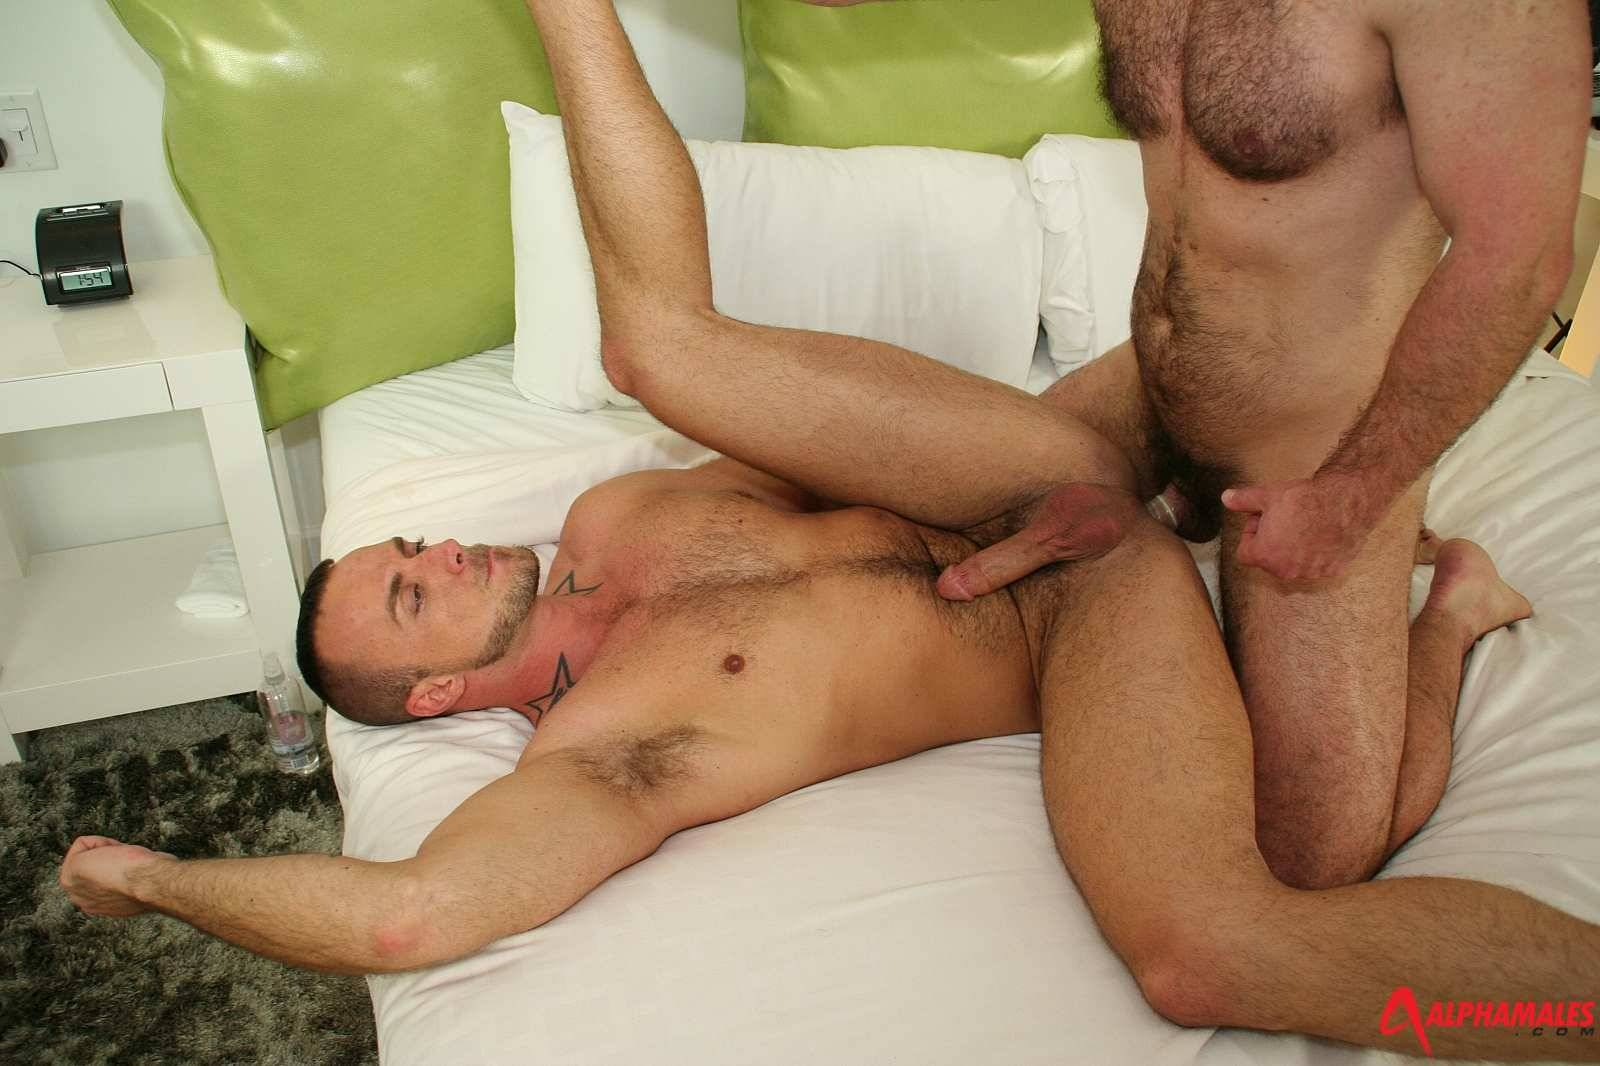 troy webb archives hairy guys in gay pornhairy guys in